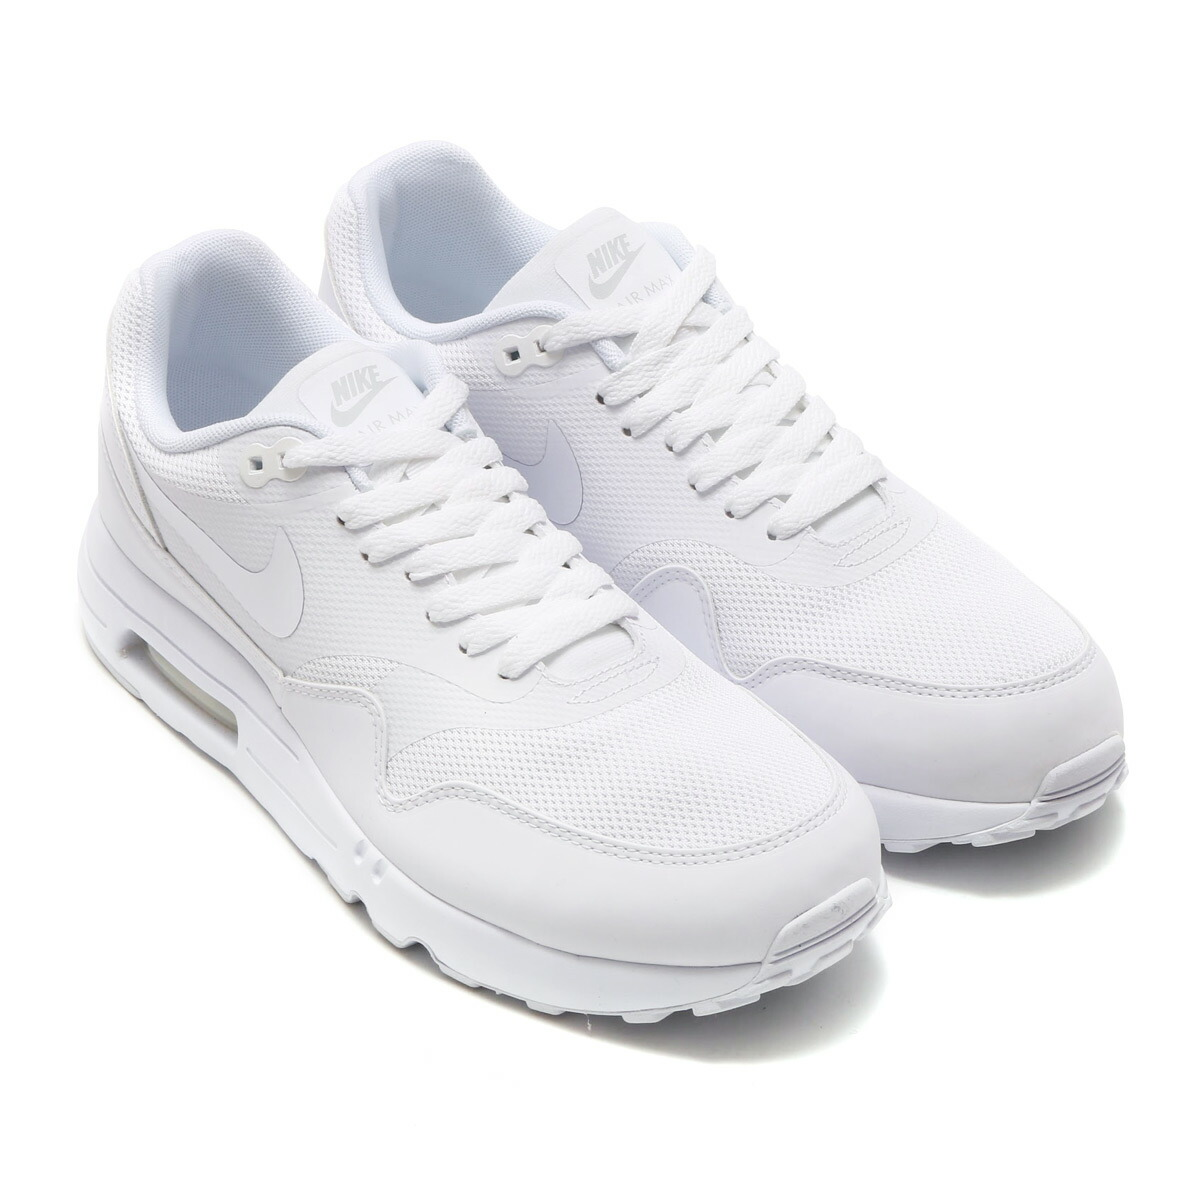 0d7ea95504afab atmos pink  NIKE AIR MAX 1 ULTRA 2.0 ESSENTIAL (Kie Ney AMAX 1 ultra ...